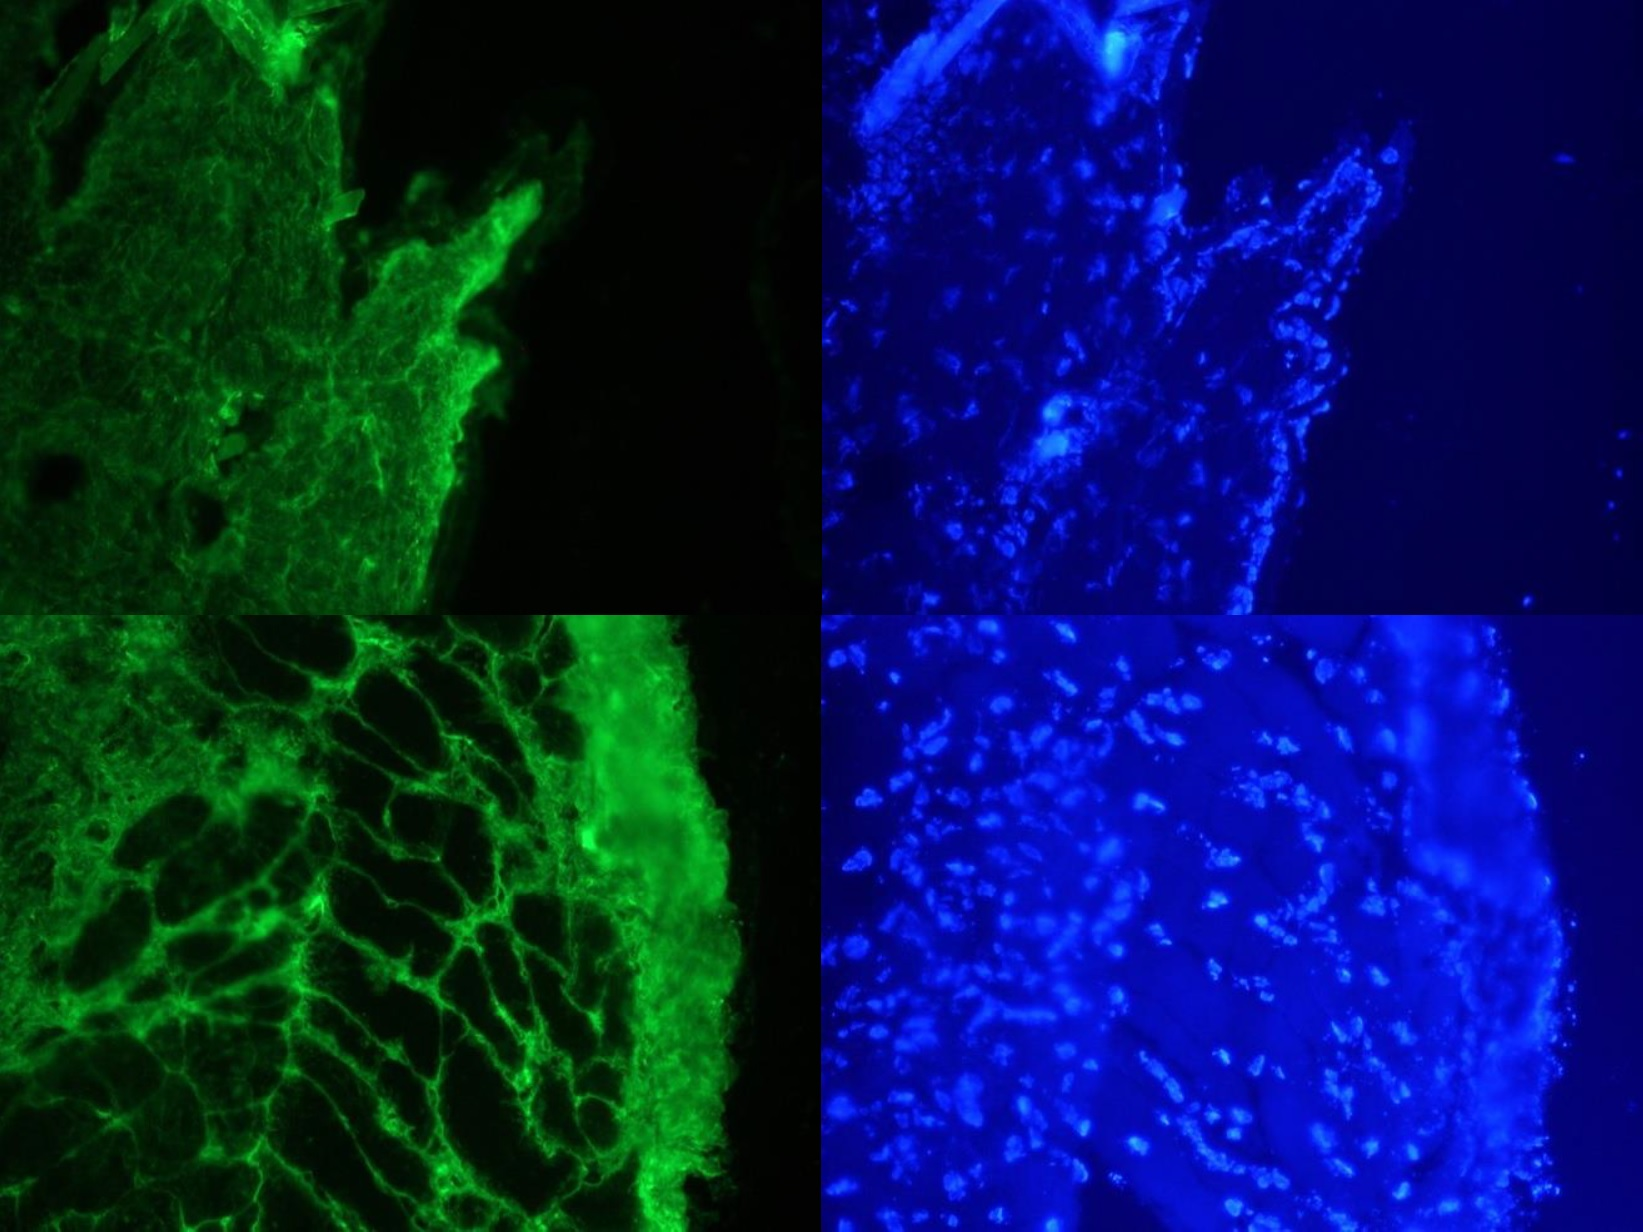 Figure 1. Images on the left: Specific indirect immunostaining of connective tissue in frozen sections of mouse skin with FI24951 (diluted 1:1000) Images on the right: Corresponding DAPI staining of nuclei in epidermis, muscle and connective tissue.